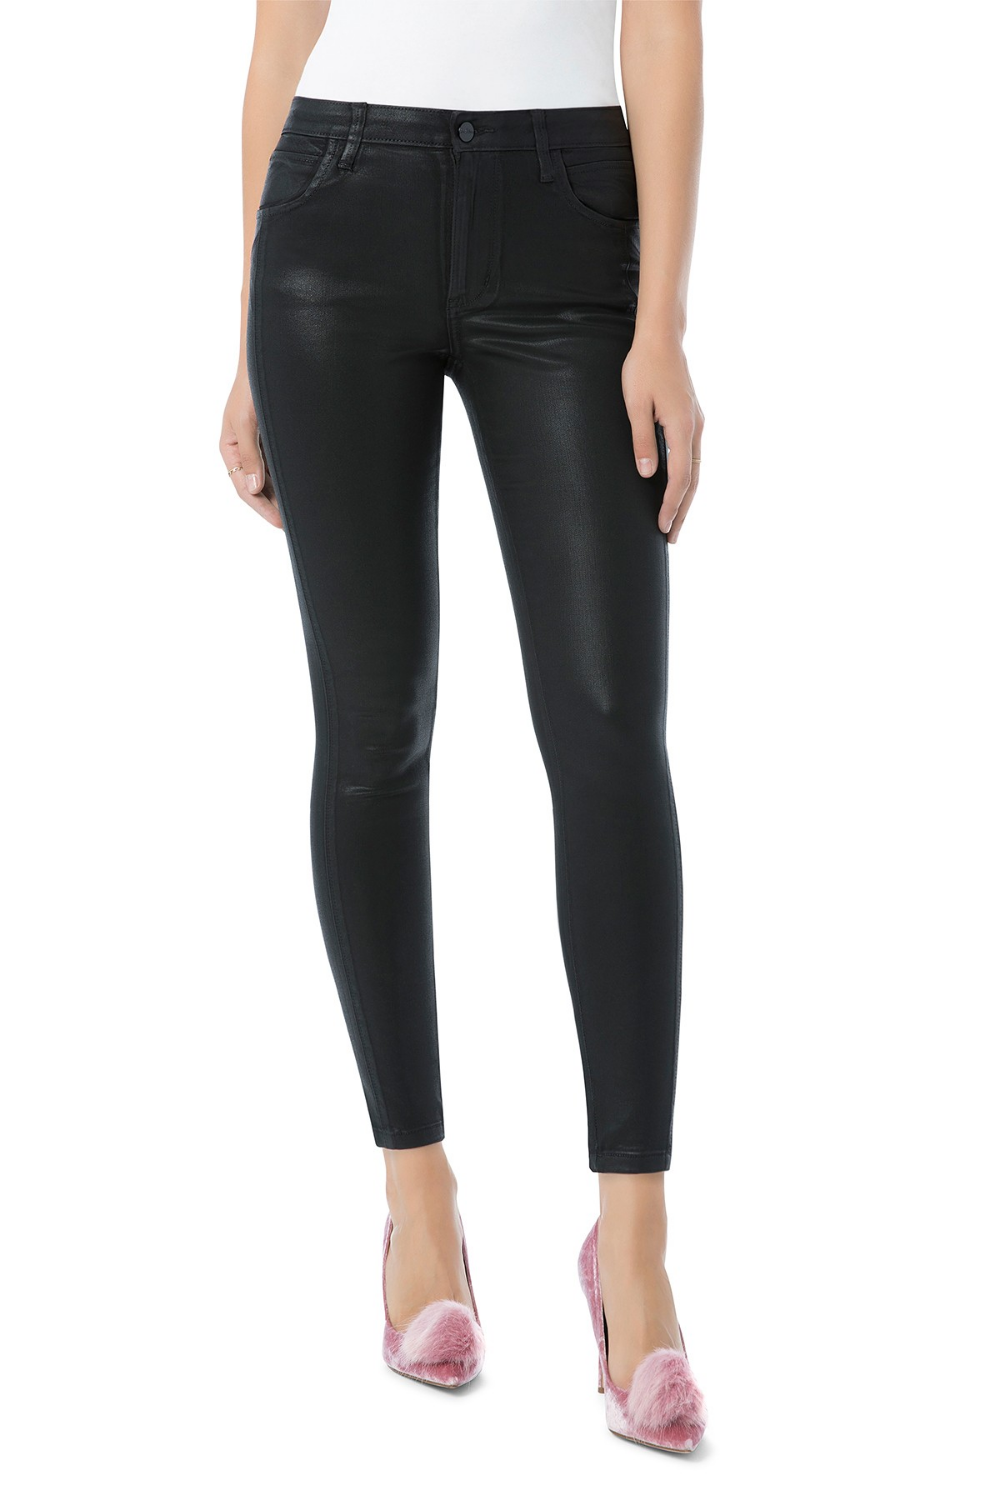 The Stiletto Ankle Skinny Faux Leather Jeans #nordstromrack